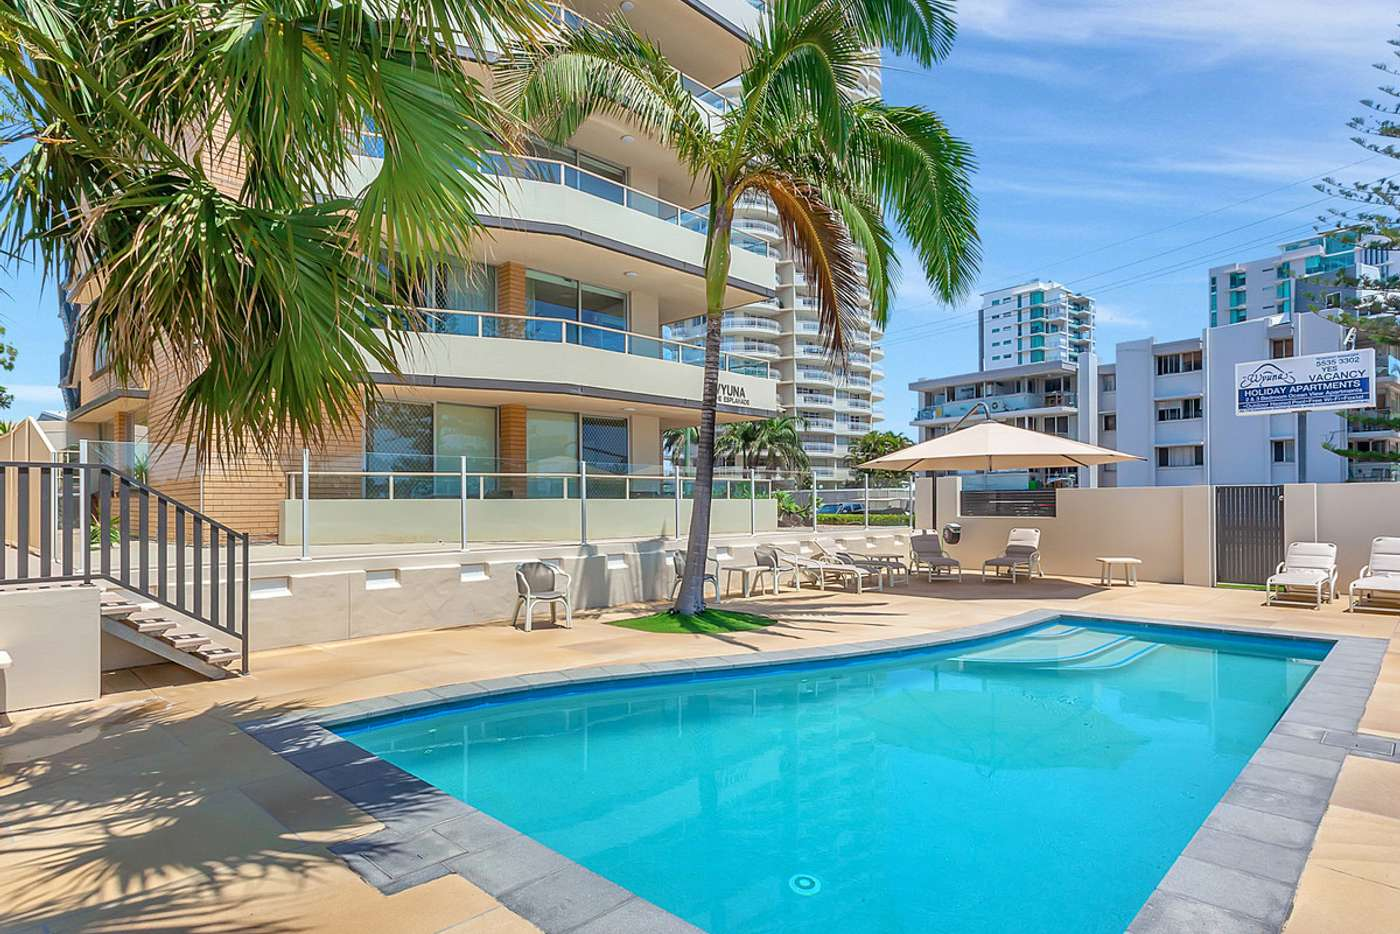 Main view of Homely apartment listing, 4/82 The Esplanade, Burleigh Heads QLD 4220